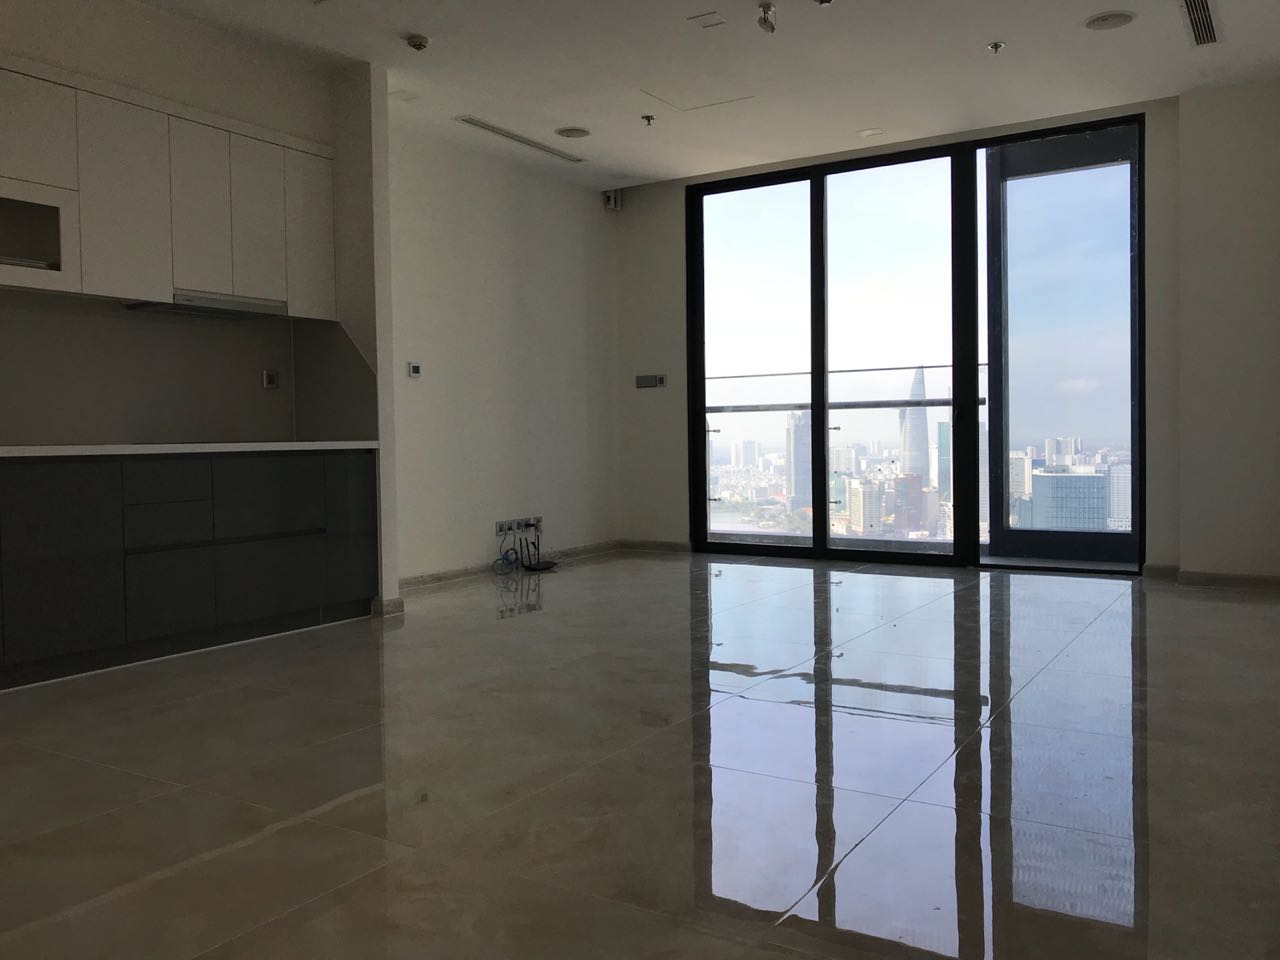 Apartment for sale VinHomes Golden River 2Bedroom Price 10.5 billion VND